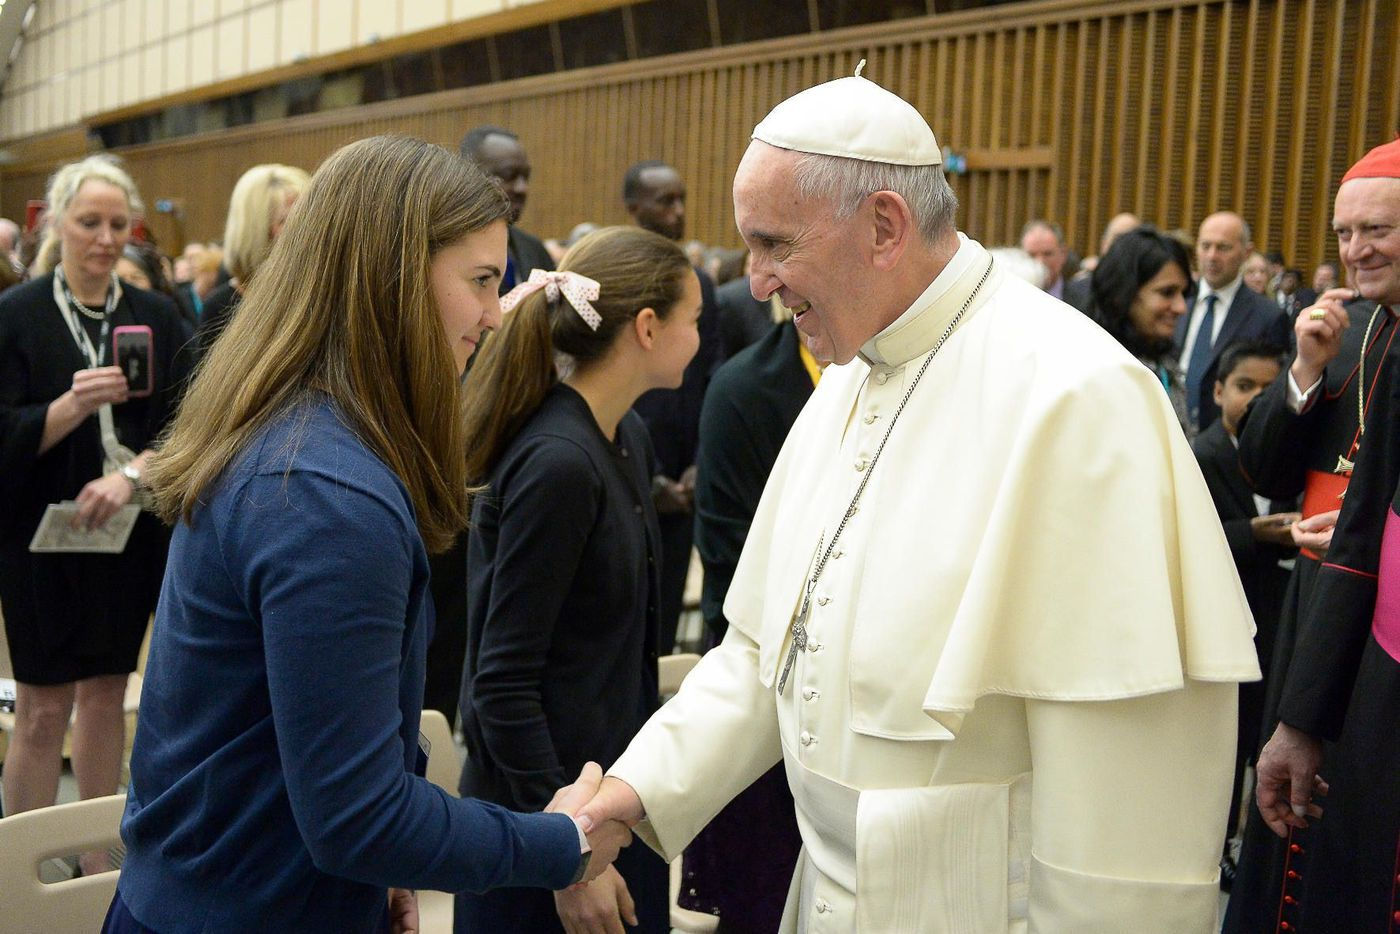 Villanova Student's Mission Promoting Type 1 Diabetes Research Put Her in Touch With a President and a Pope